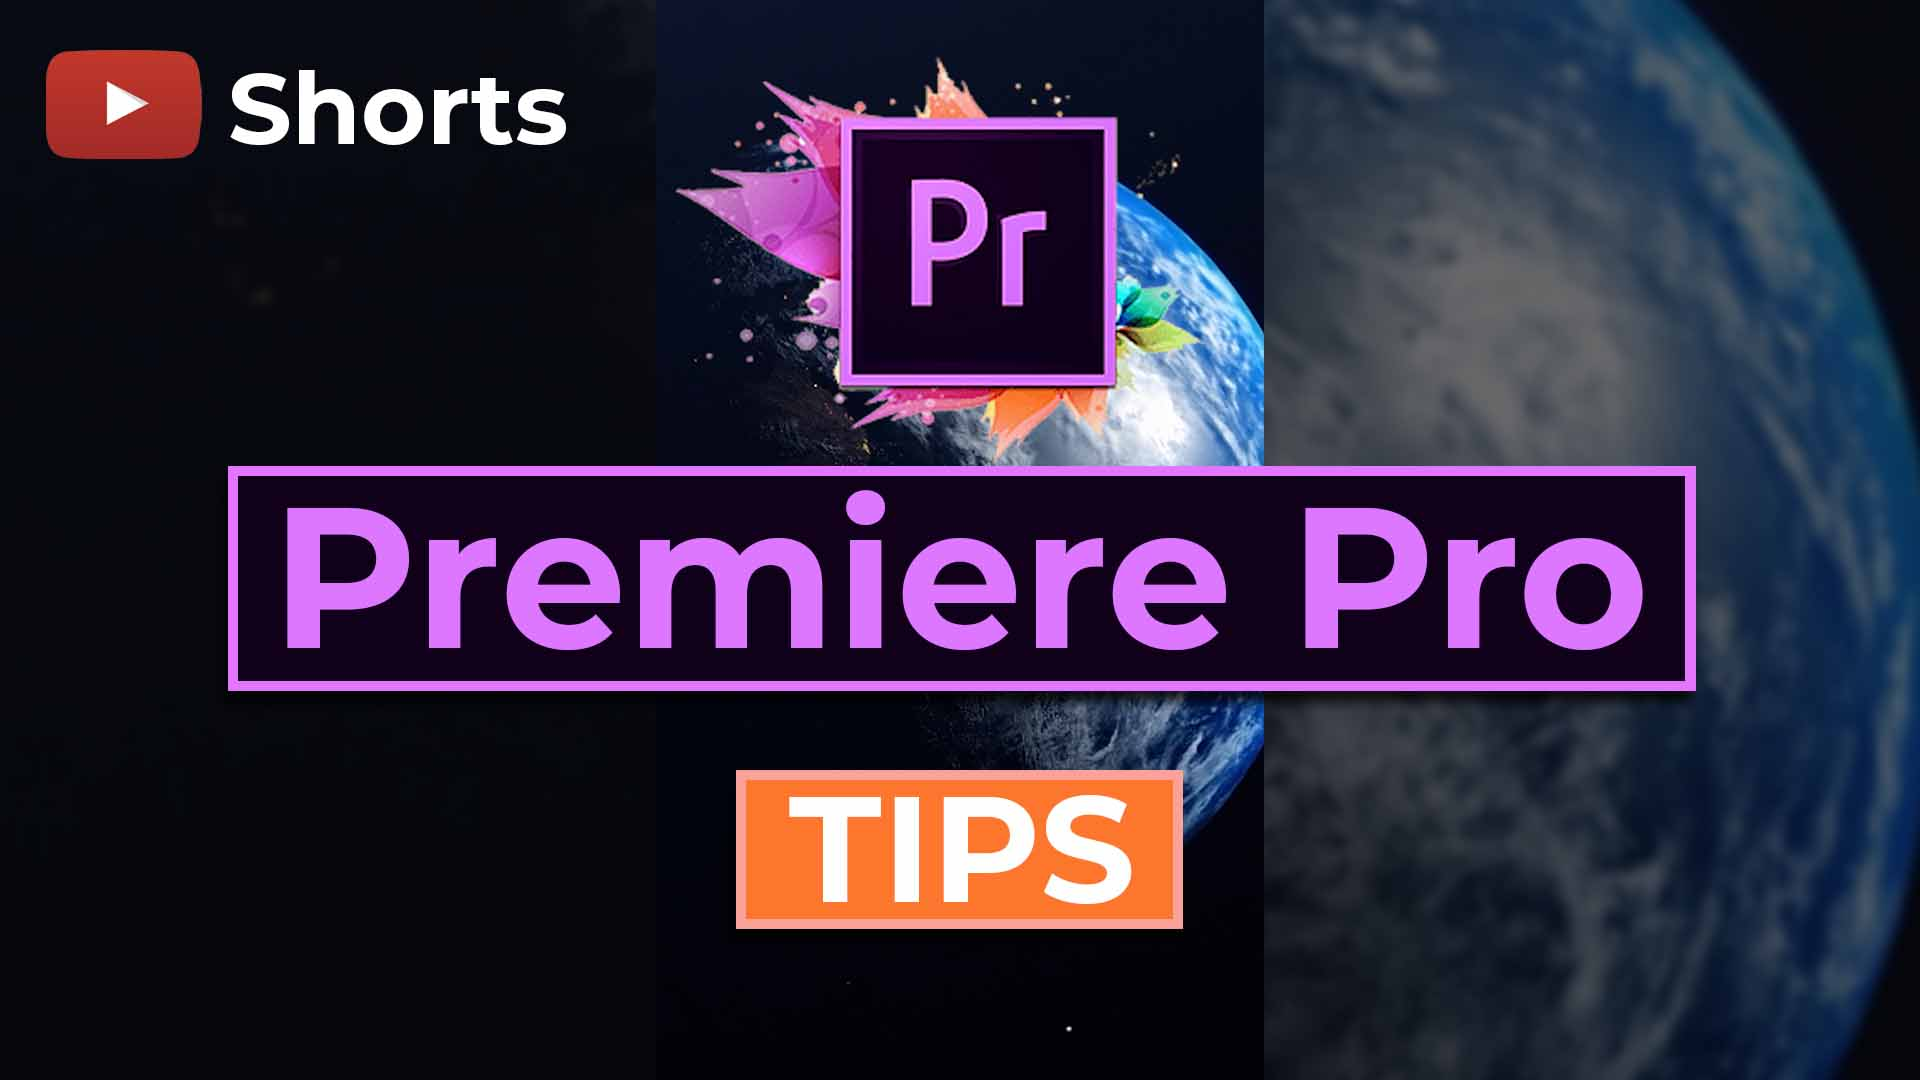 Premiere Pro Tips - ALL SHORTS